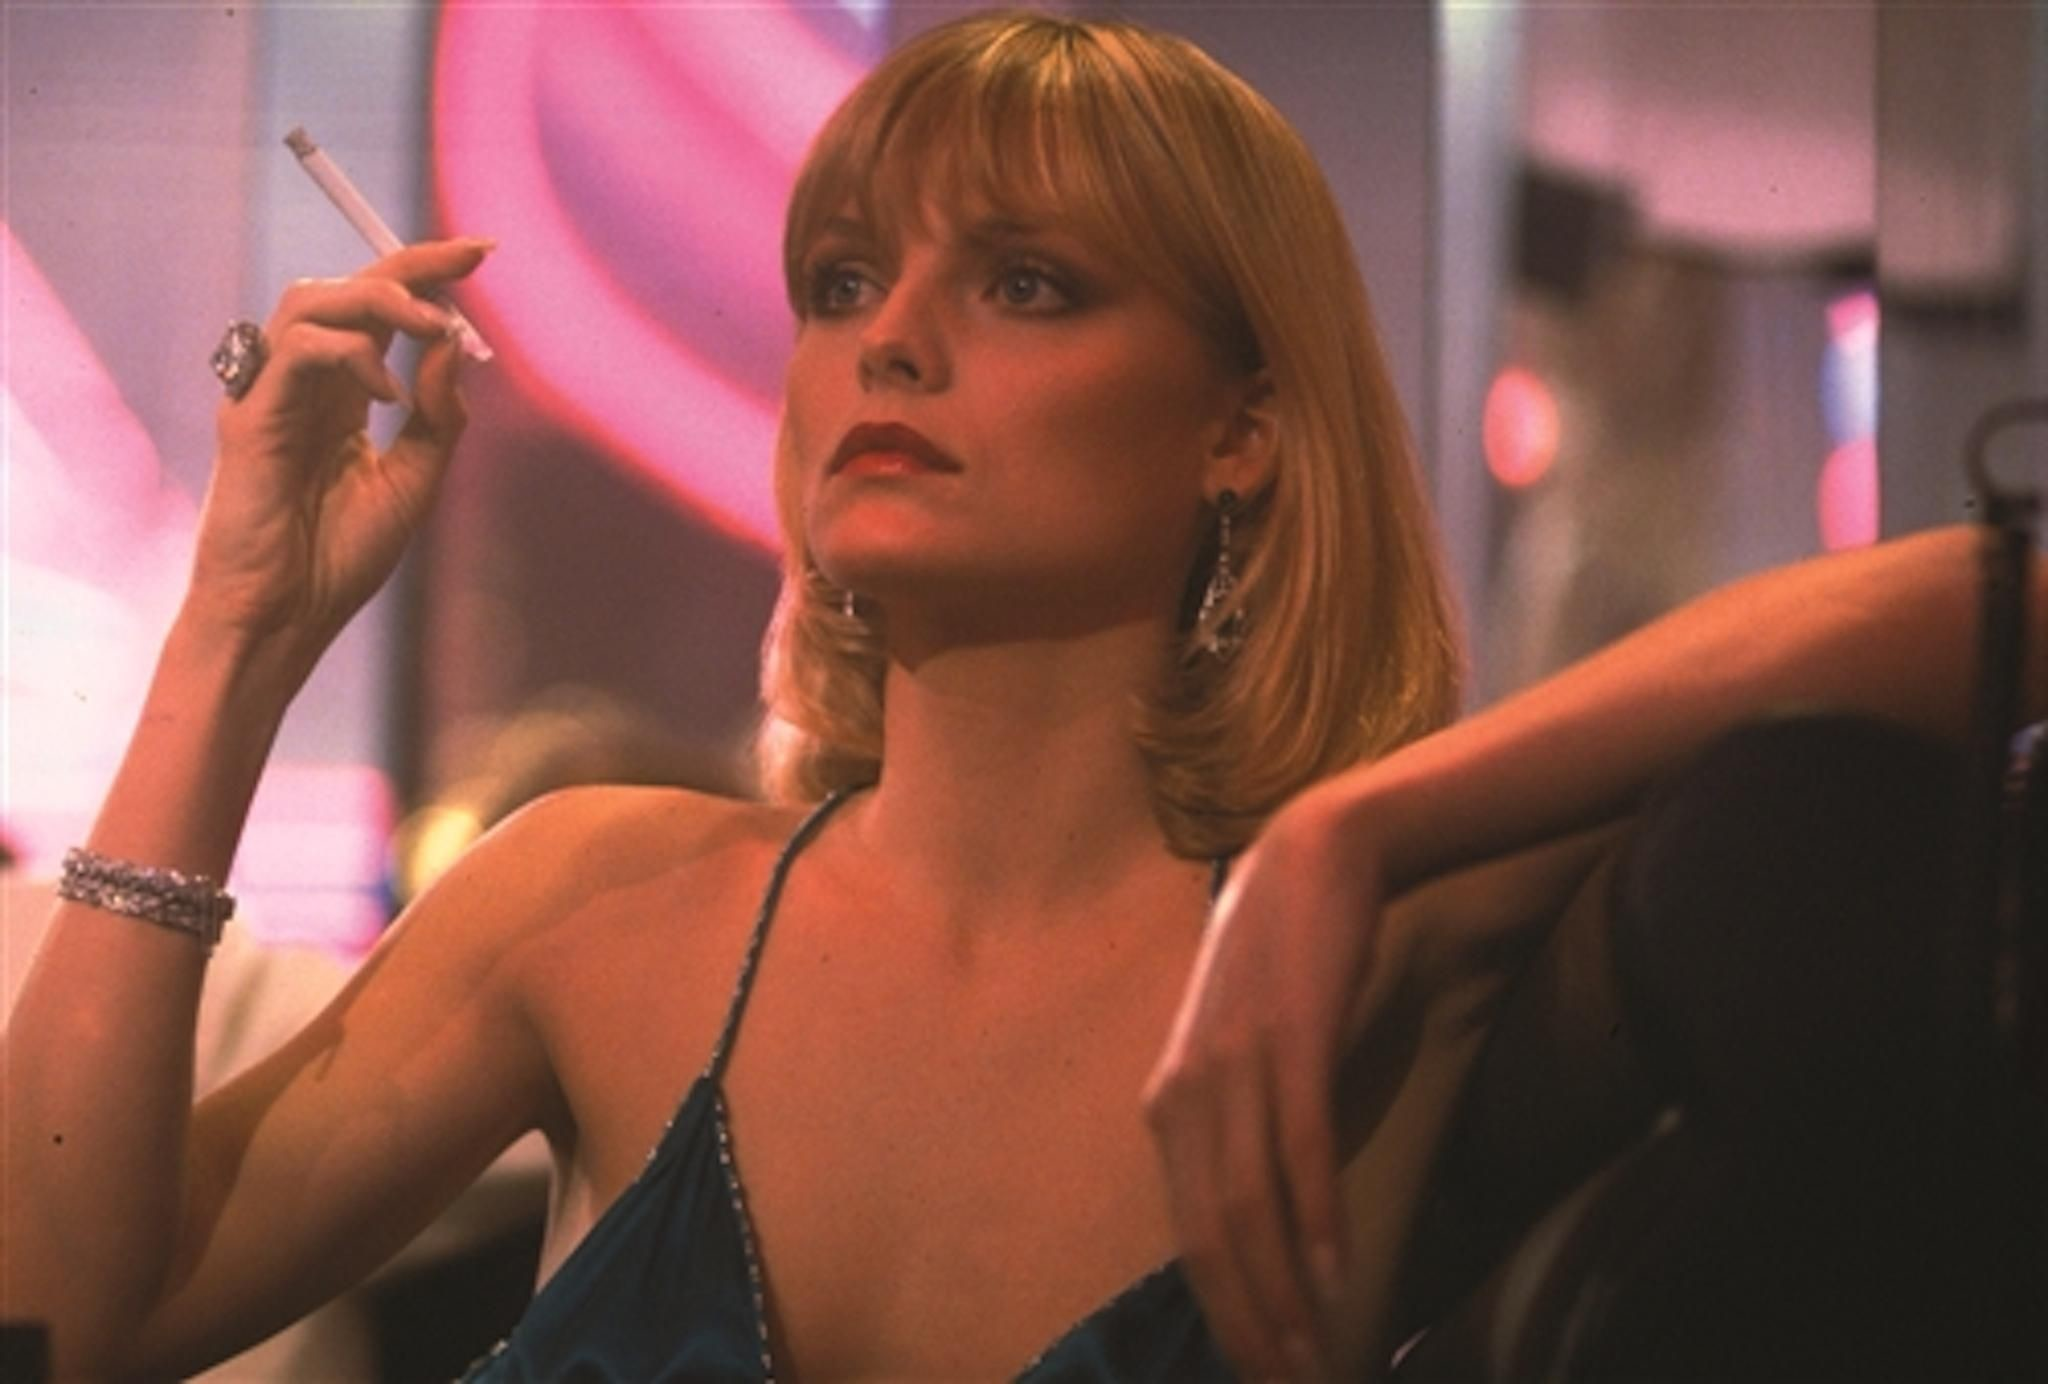 Res: 2048x1384, Michelle Pfeiffer Scarface Hd Images 3 HD Wallpapers